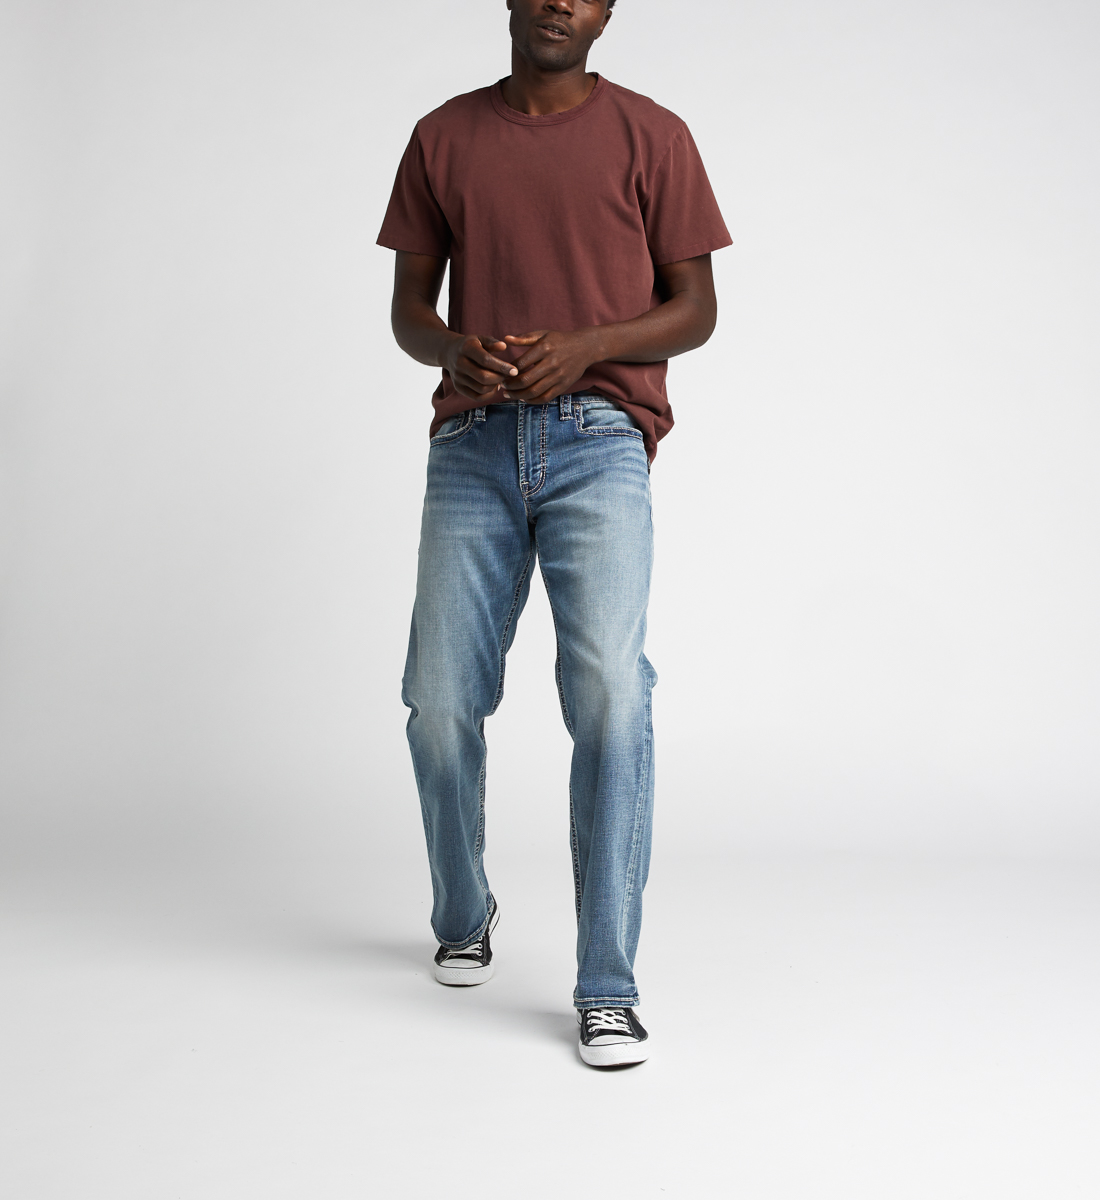 Zac Relaxed Fit Straight Jeans,Indigo Alt Image 1